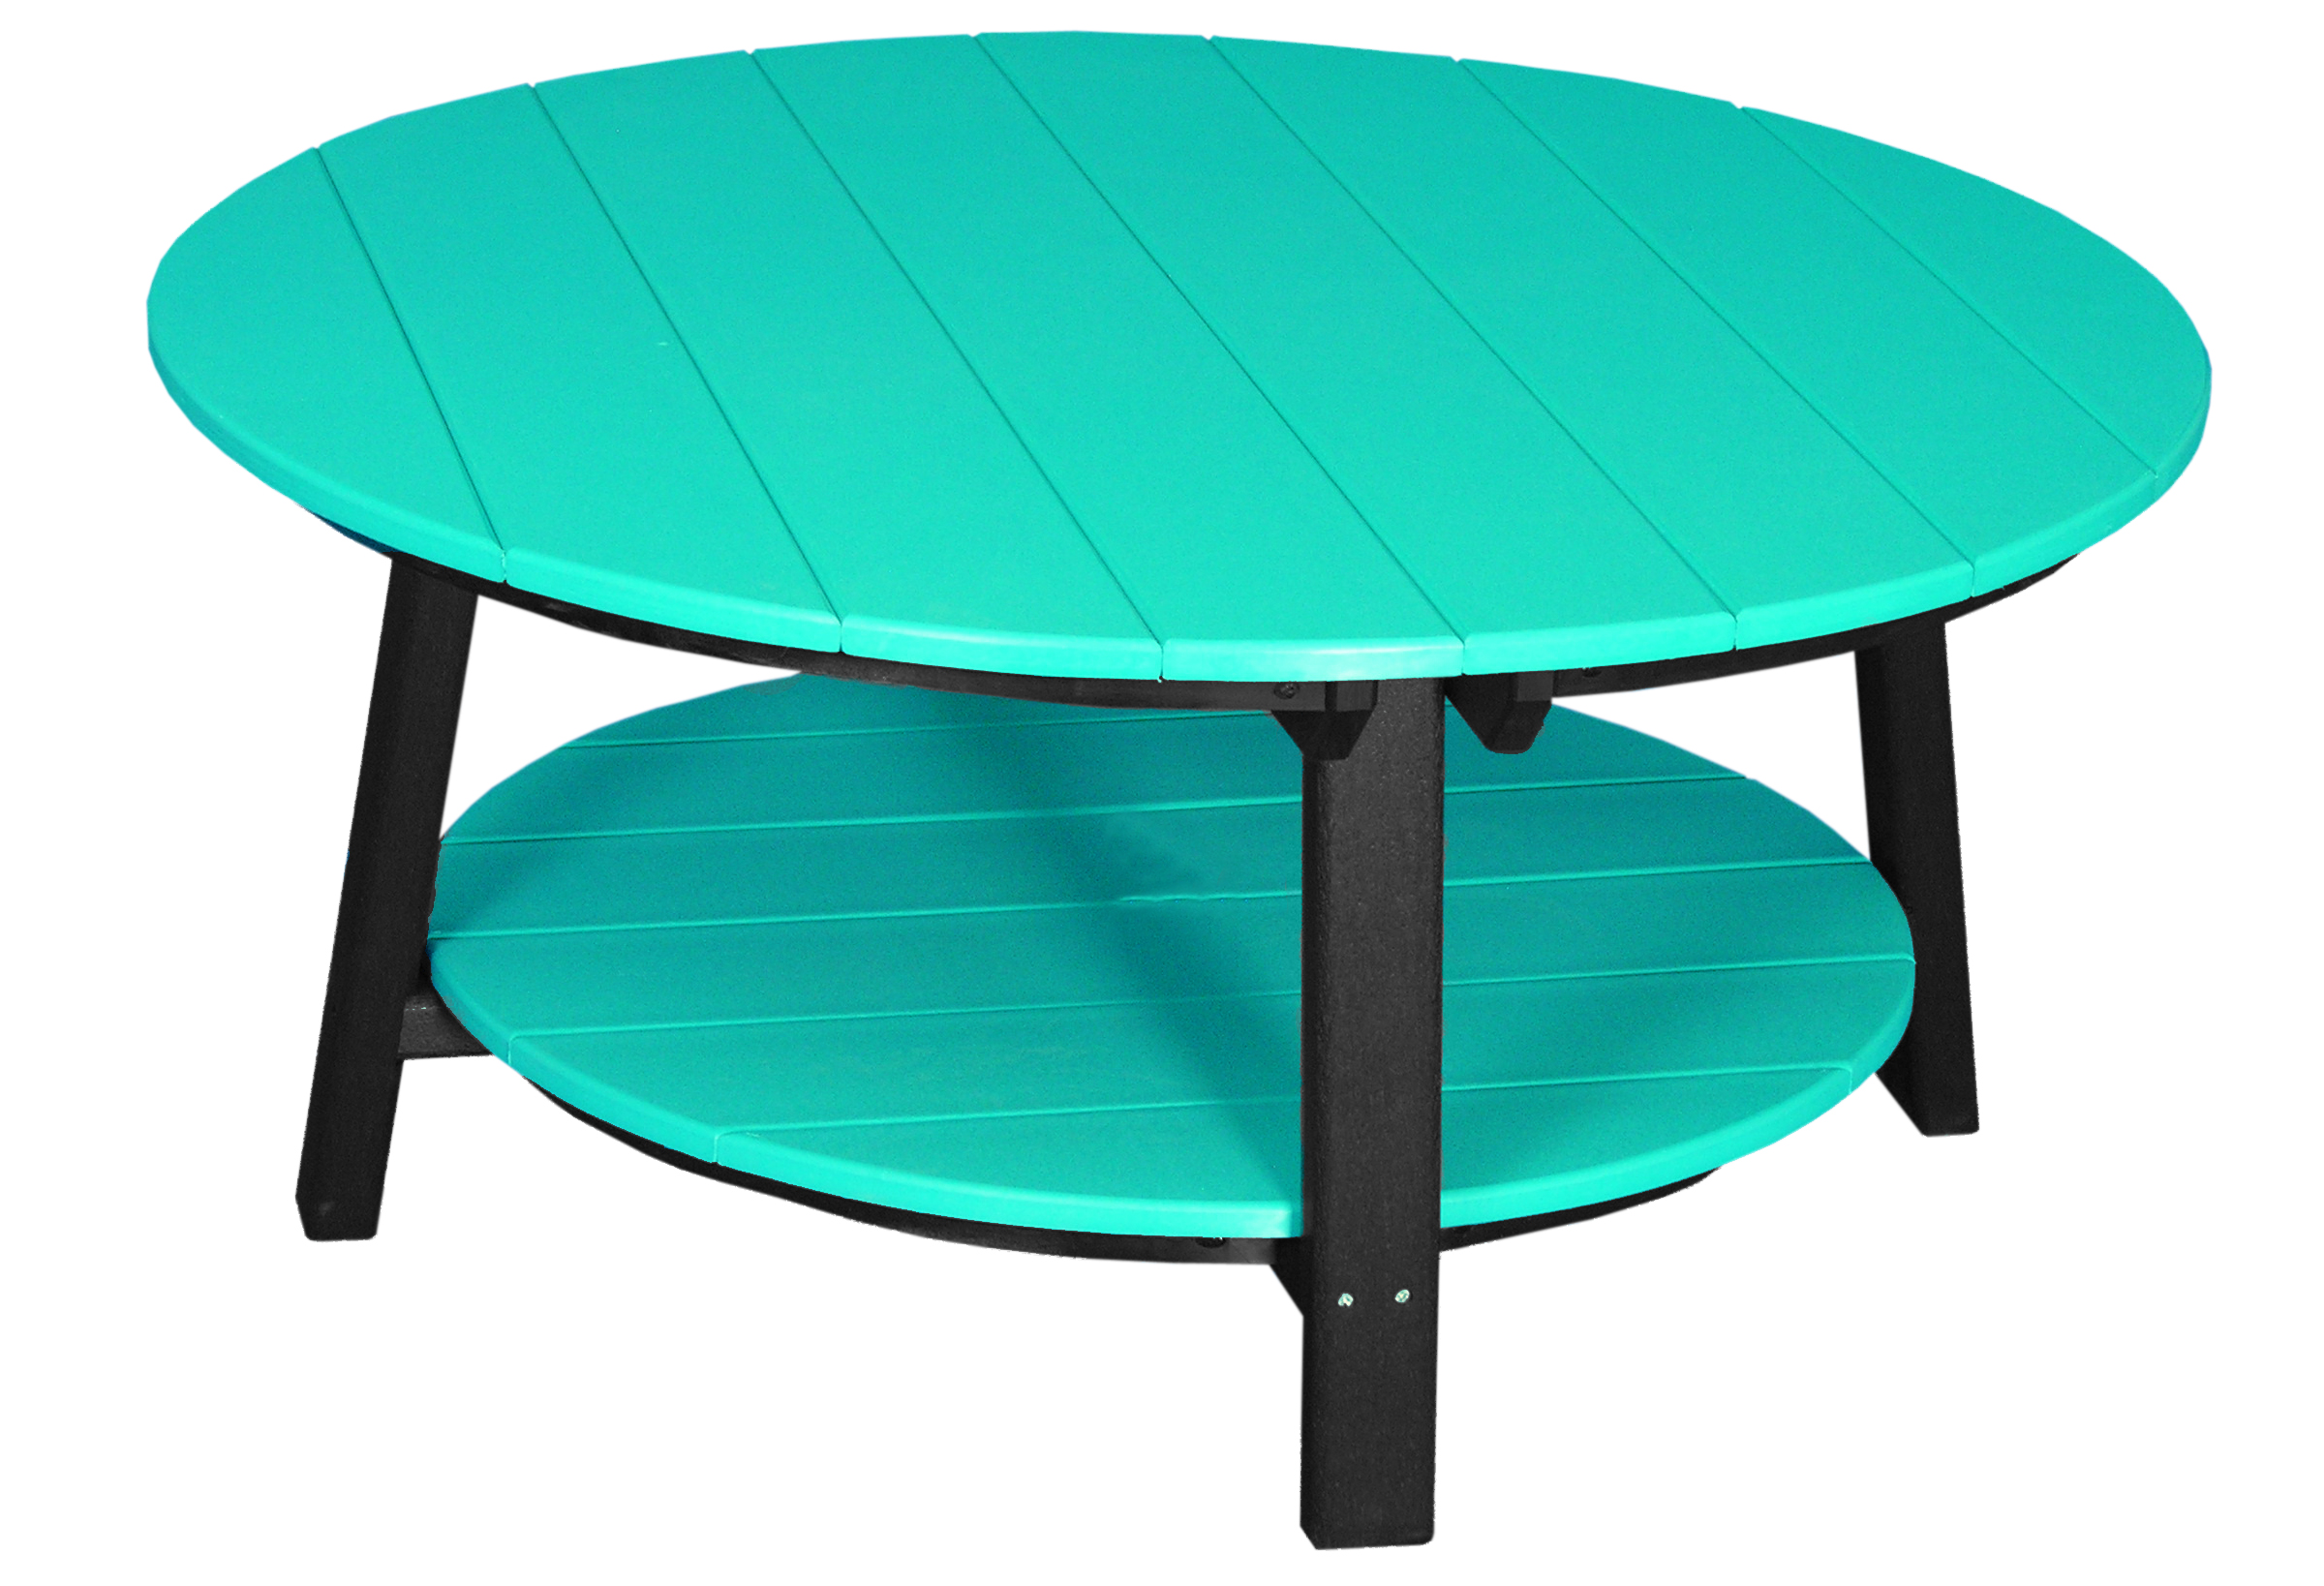 side tables amish merchant deluxe conversation table blue small teal end long narrow console round butcher block acrylic desk target gold outdoor dog house ideas plastic tile